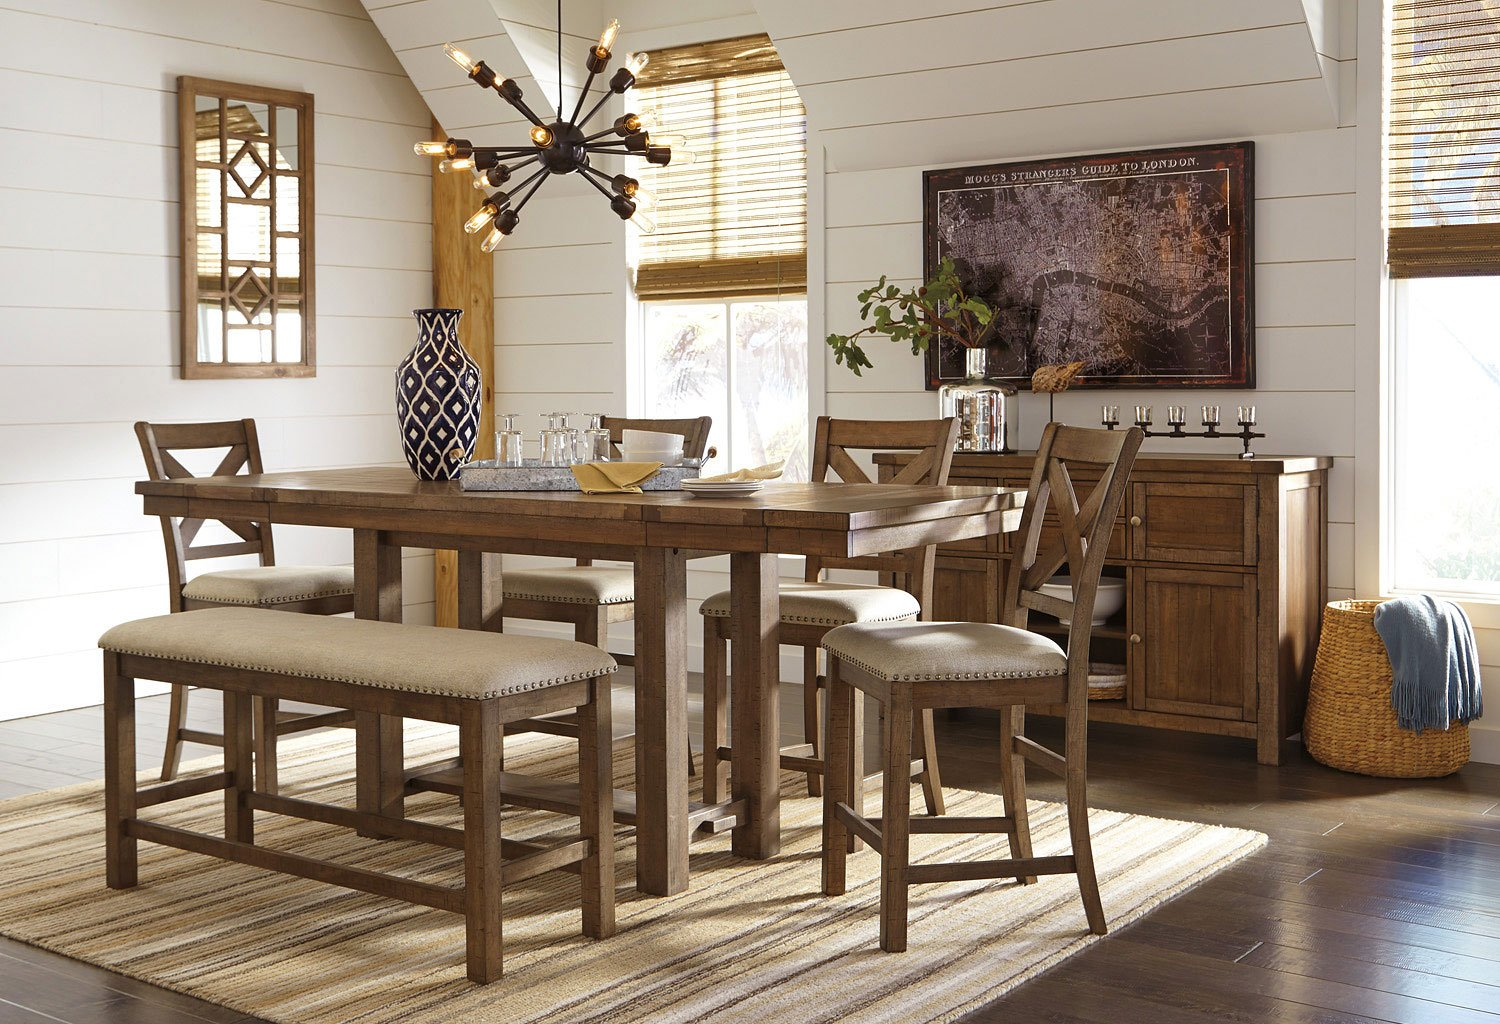 Moriville Counter Height Dining Set W/ Bench